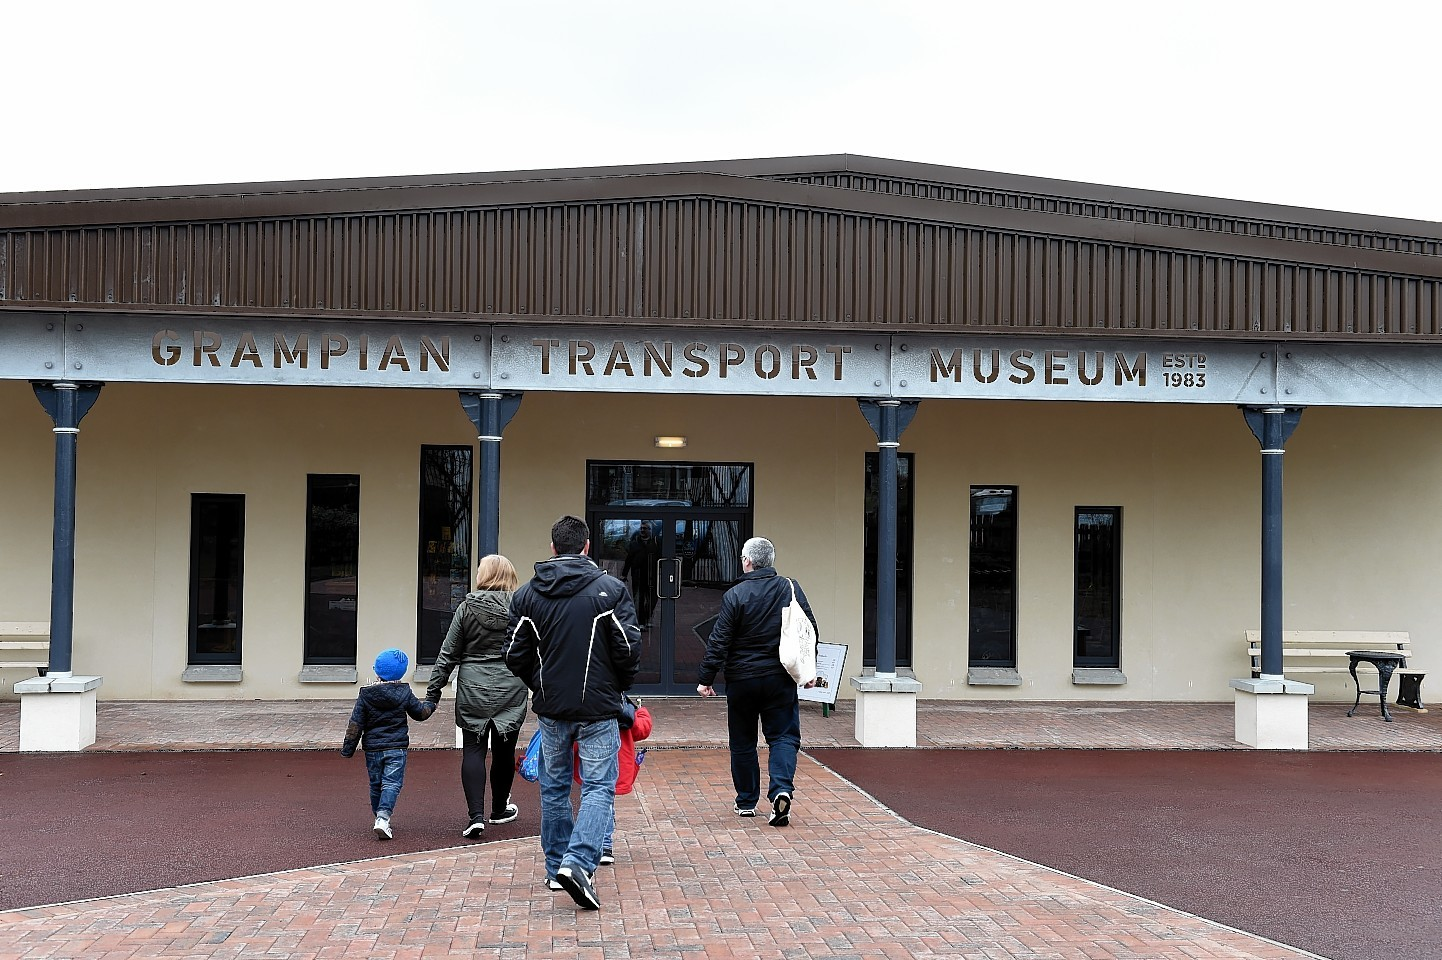 Grampian Transport Museum is among the six attractions participating in the initiative.